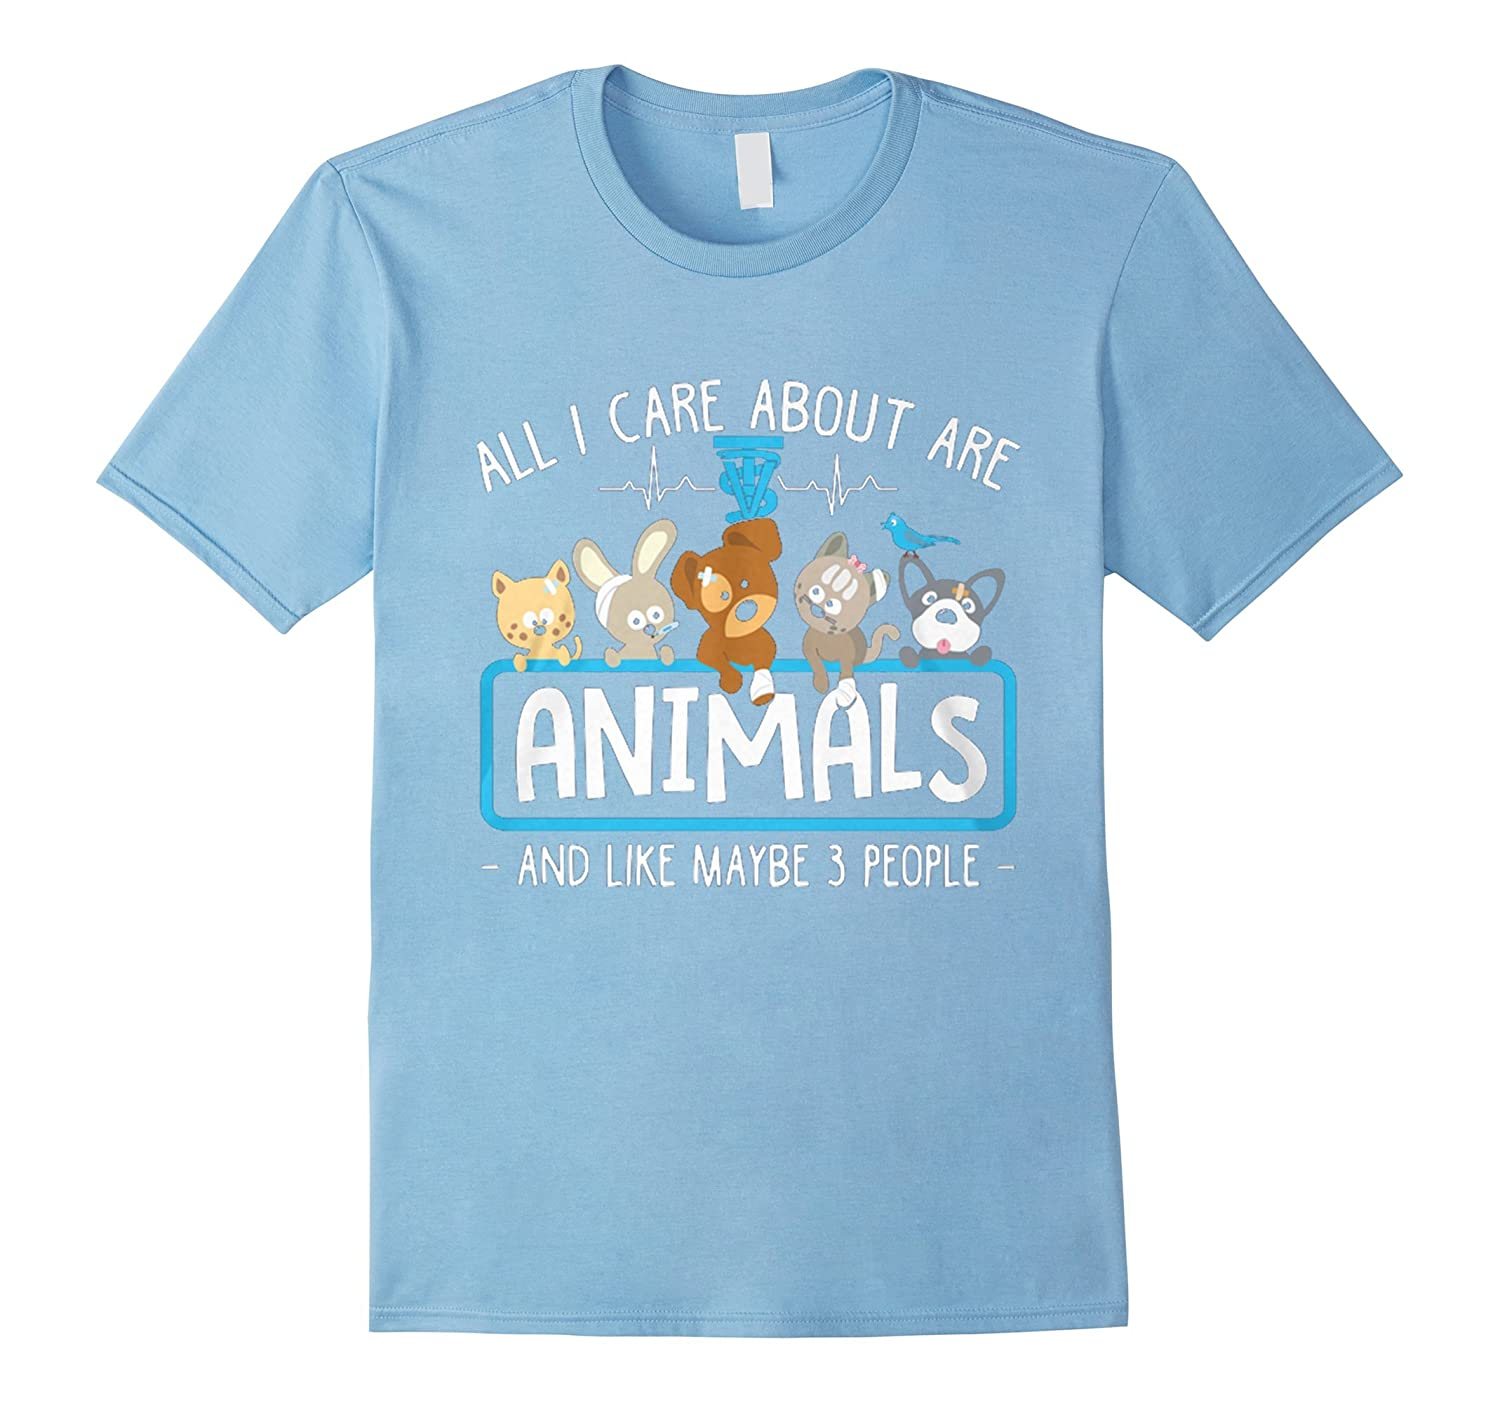 All I care about are animals and maybe like 3 people shirt-PL